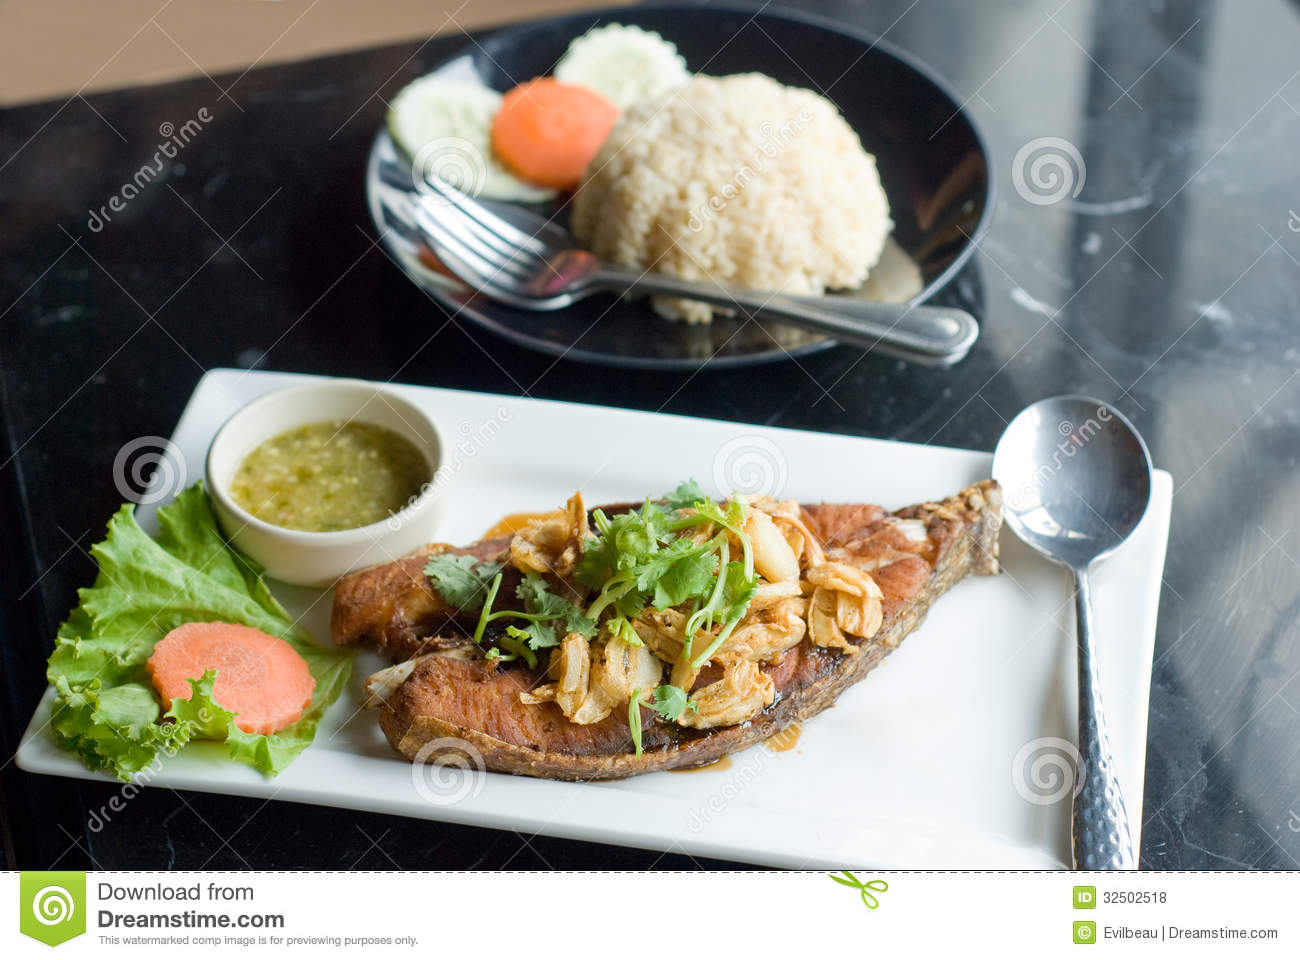 Deep fried fish and rice royalty free stock photos image for What to serve with fish